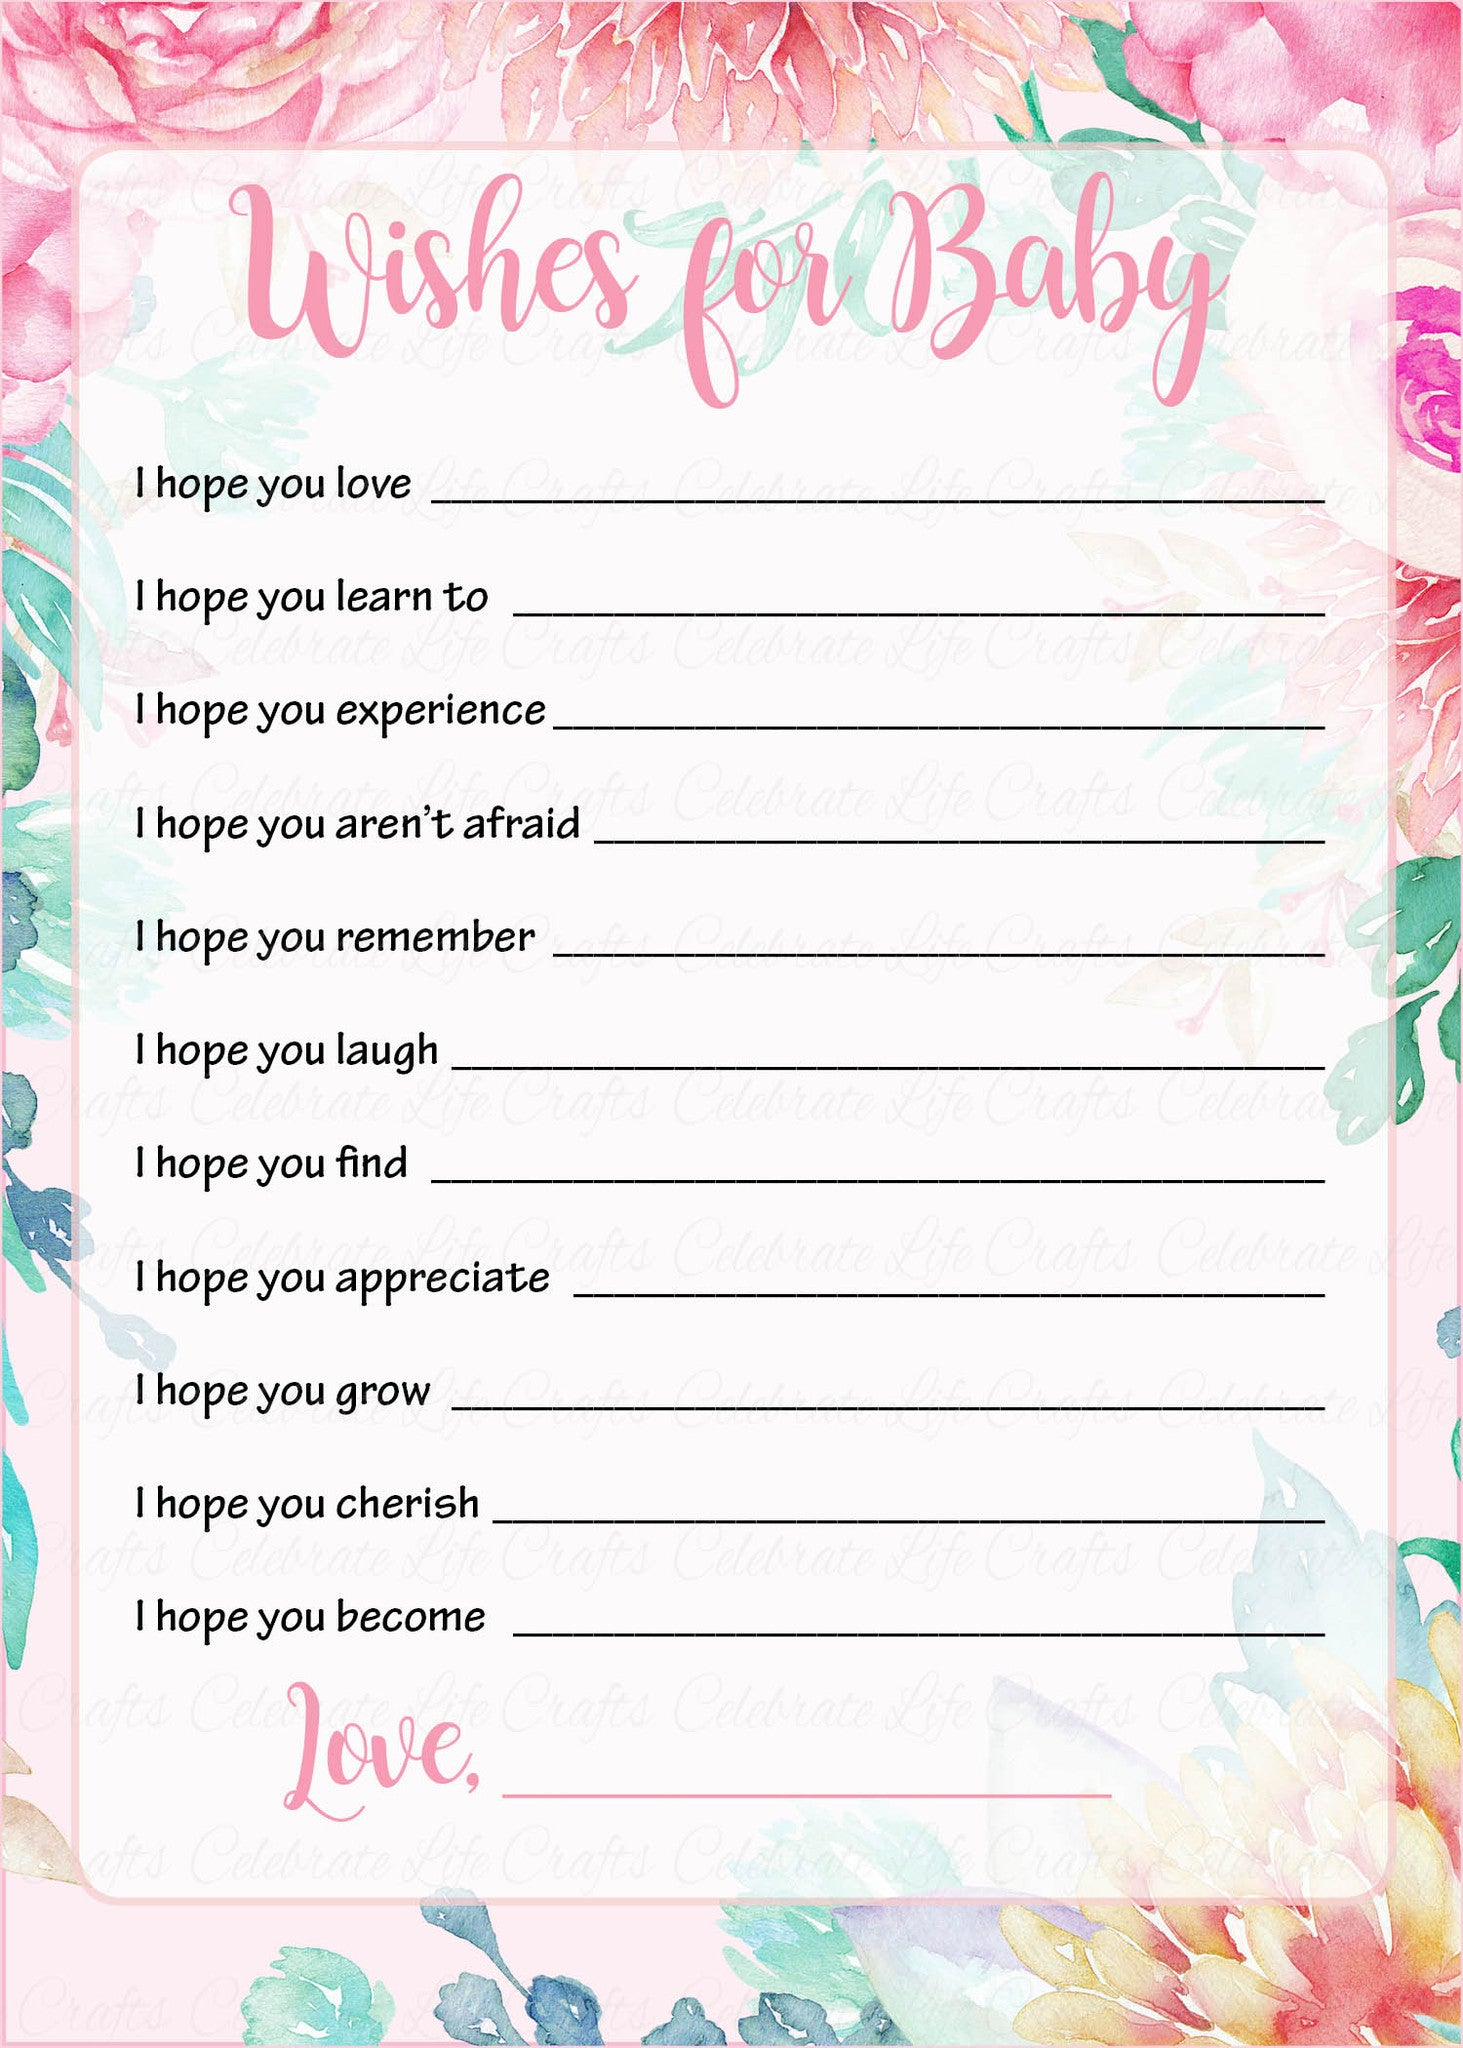 Wishes for baby shower activity spring baby shower theme for wishes for baby cards printable download pink floral spring baby shower activity b33001 kristyandbryce Image collections